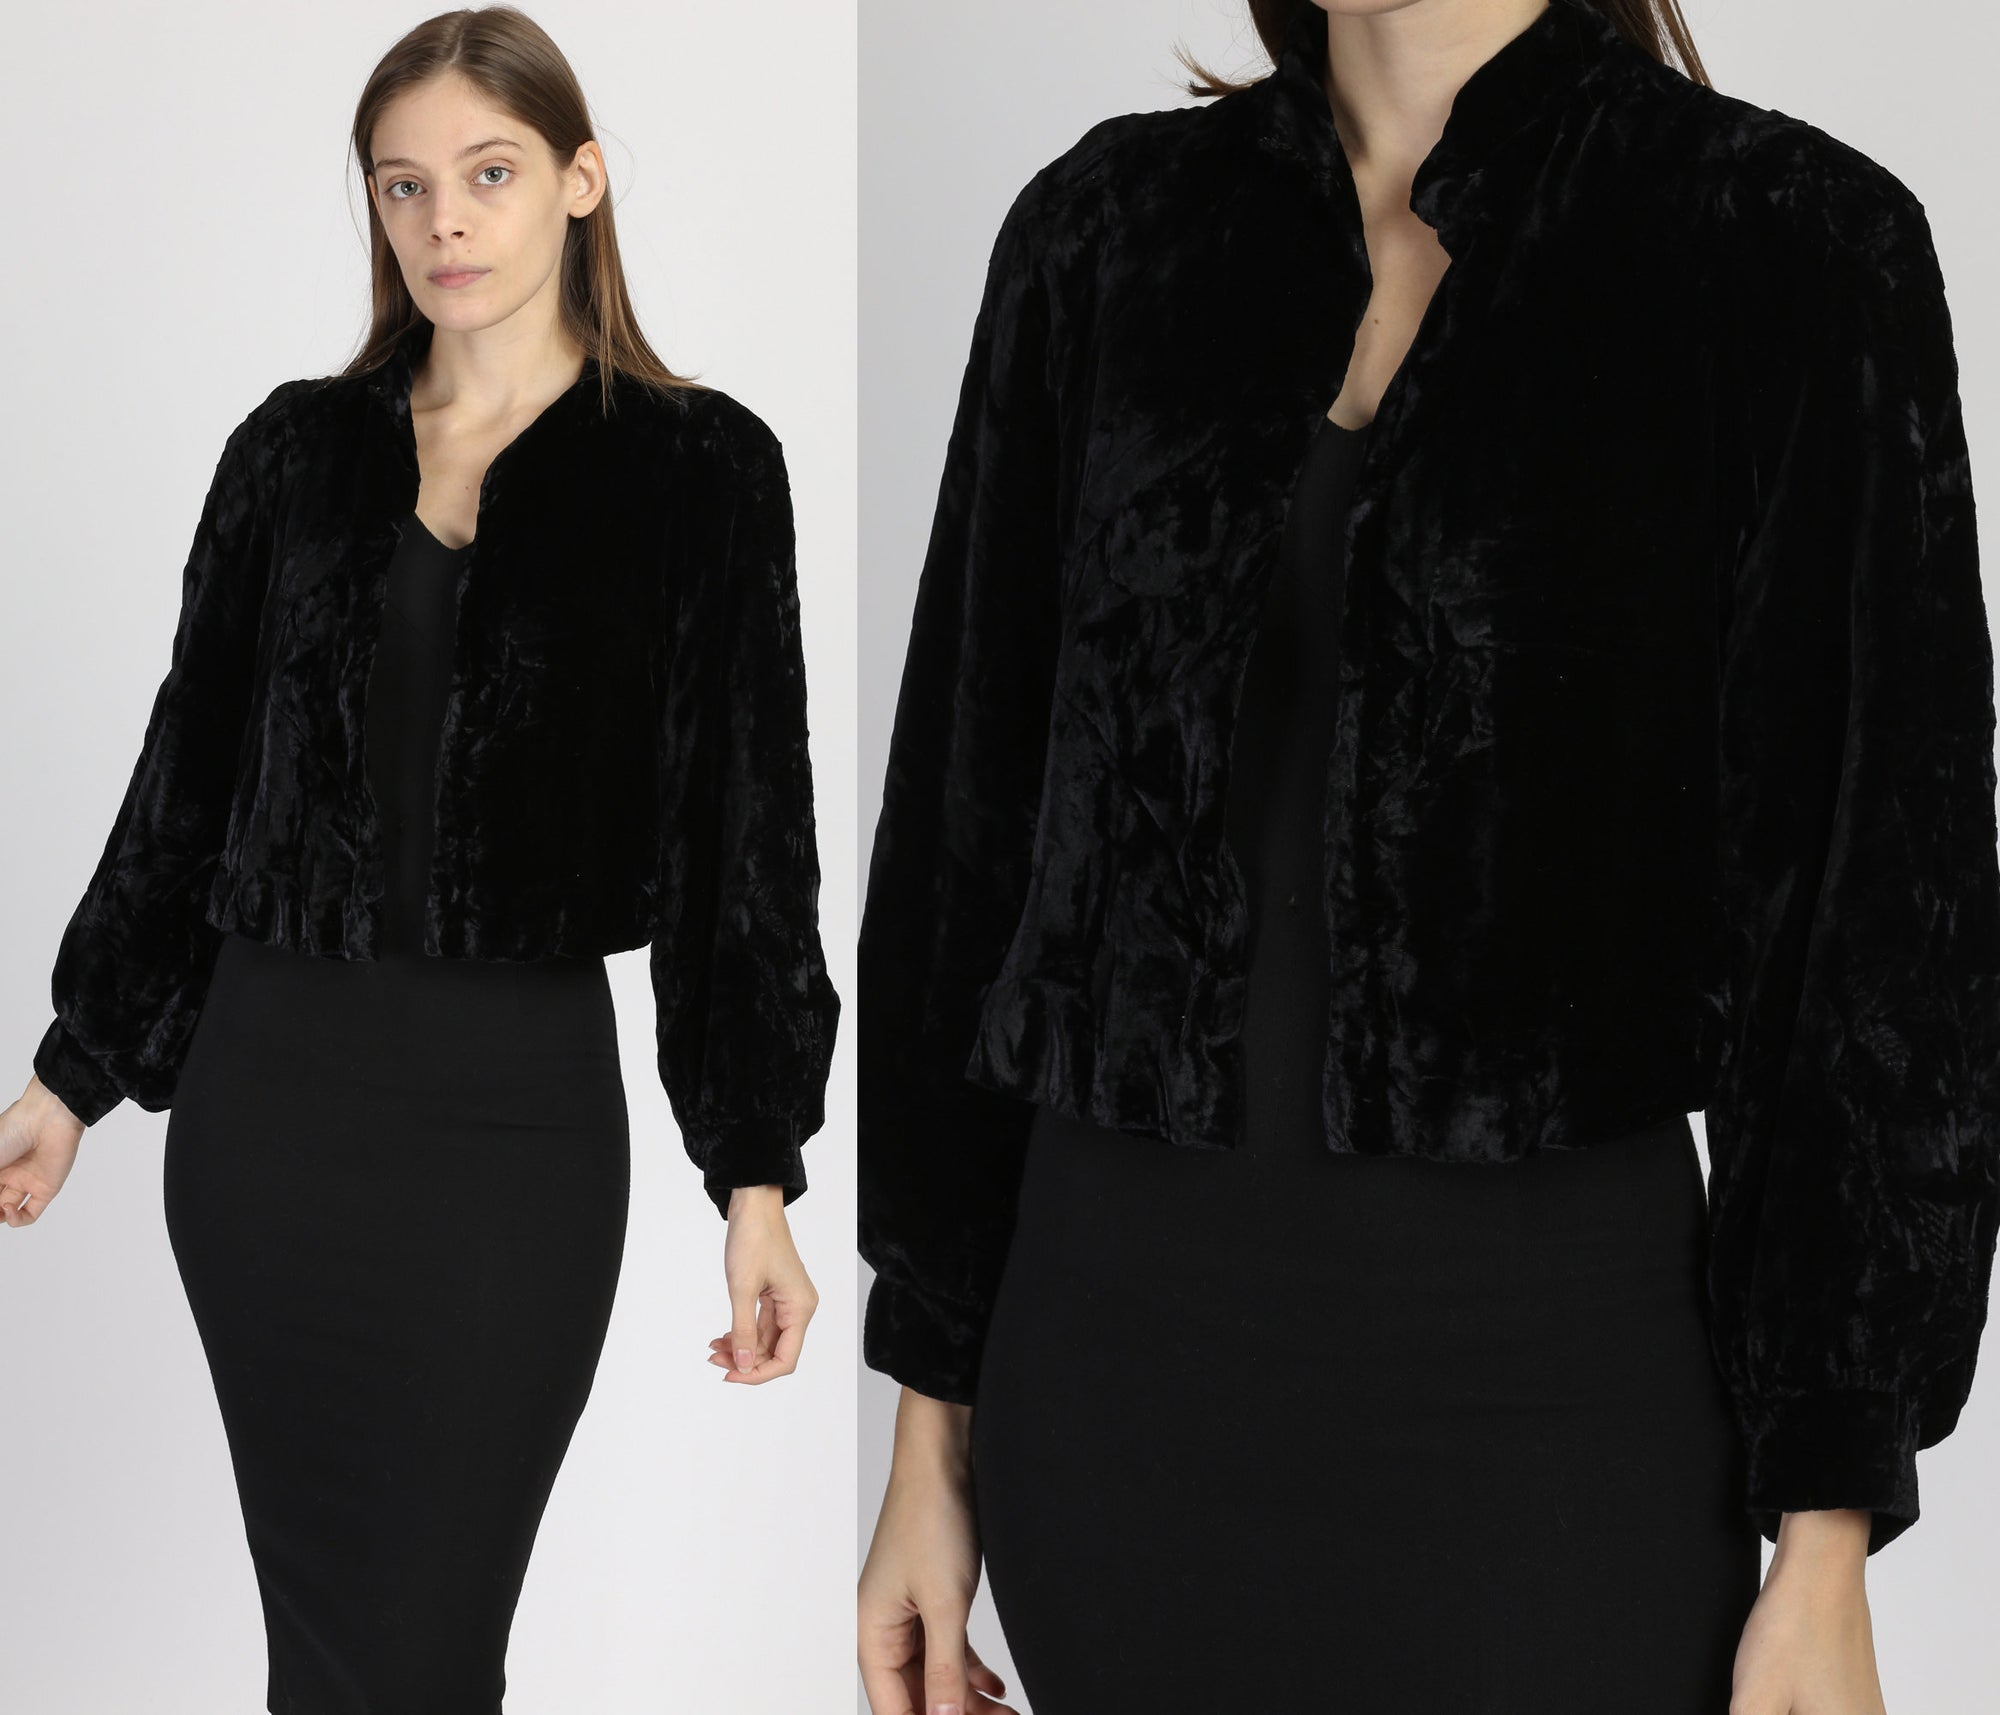 Vintage 1930s Black Velvet Bolero Jacket - Medium